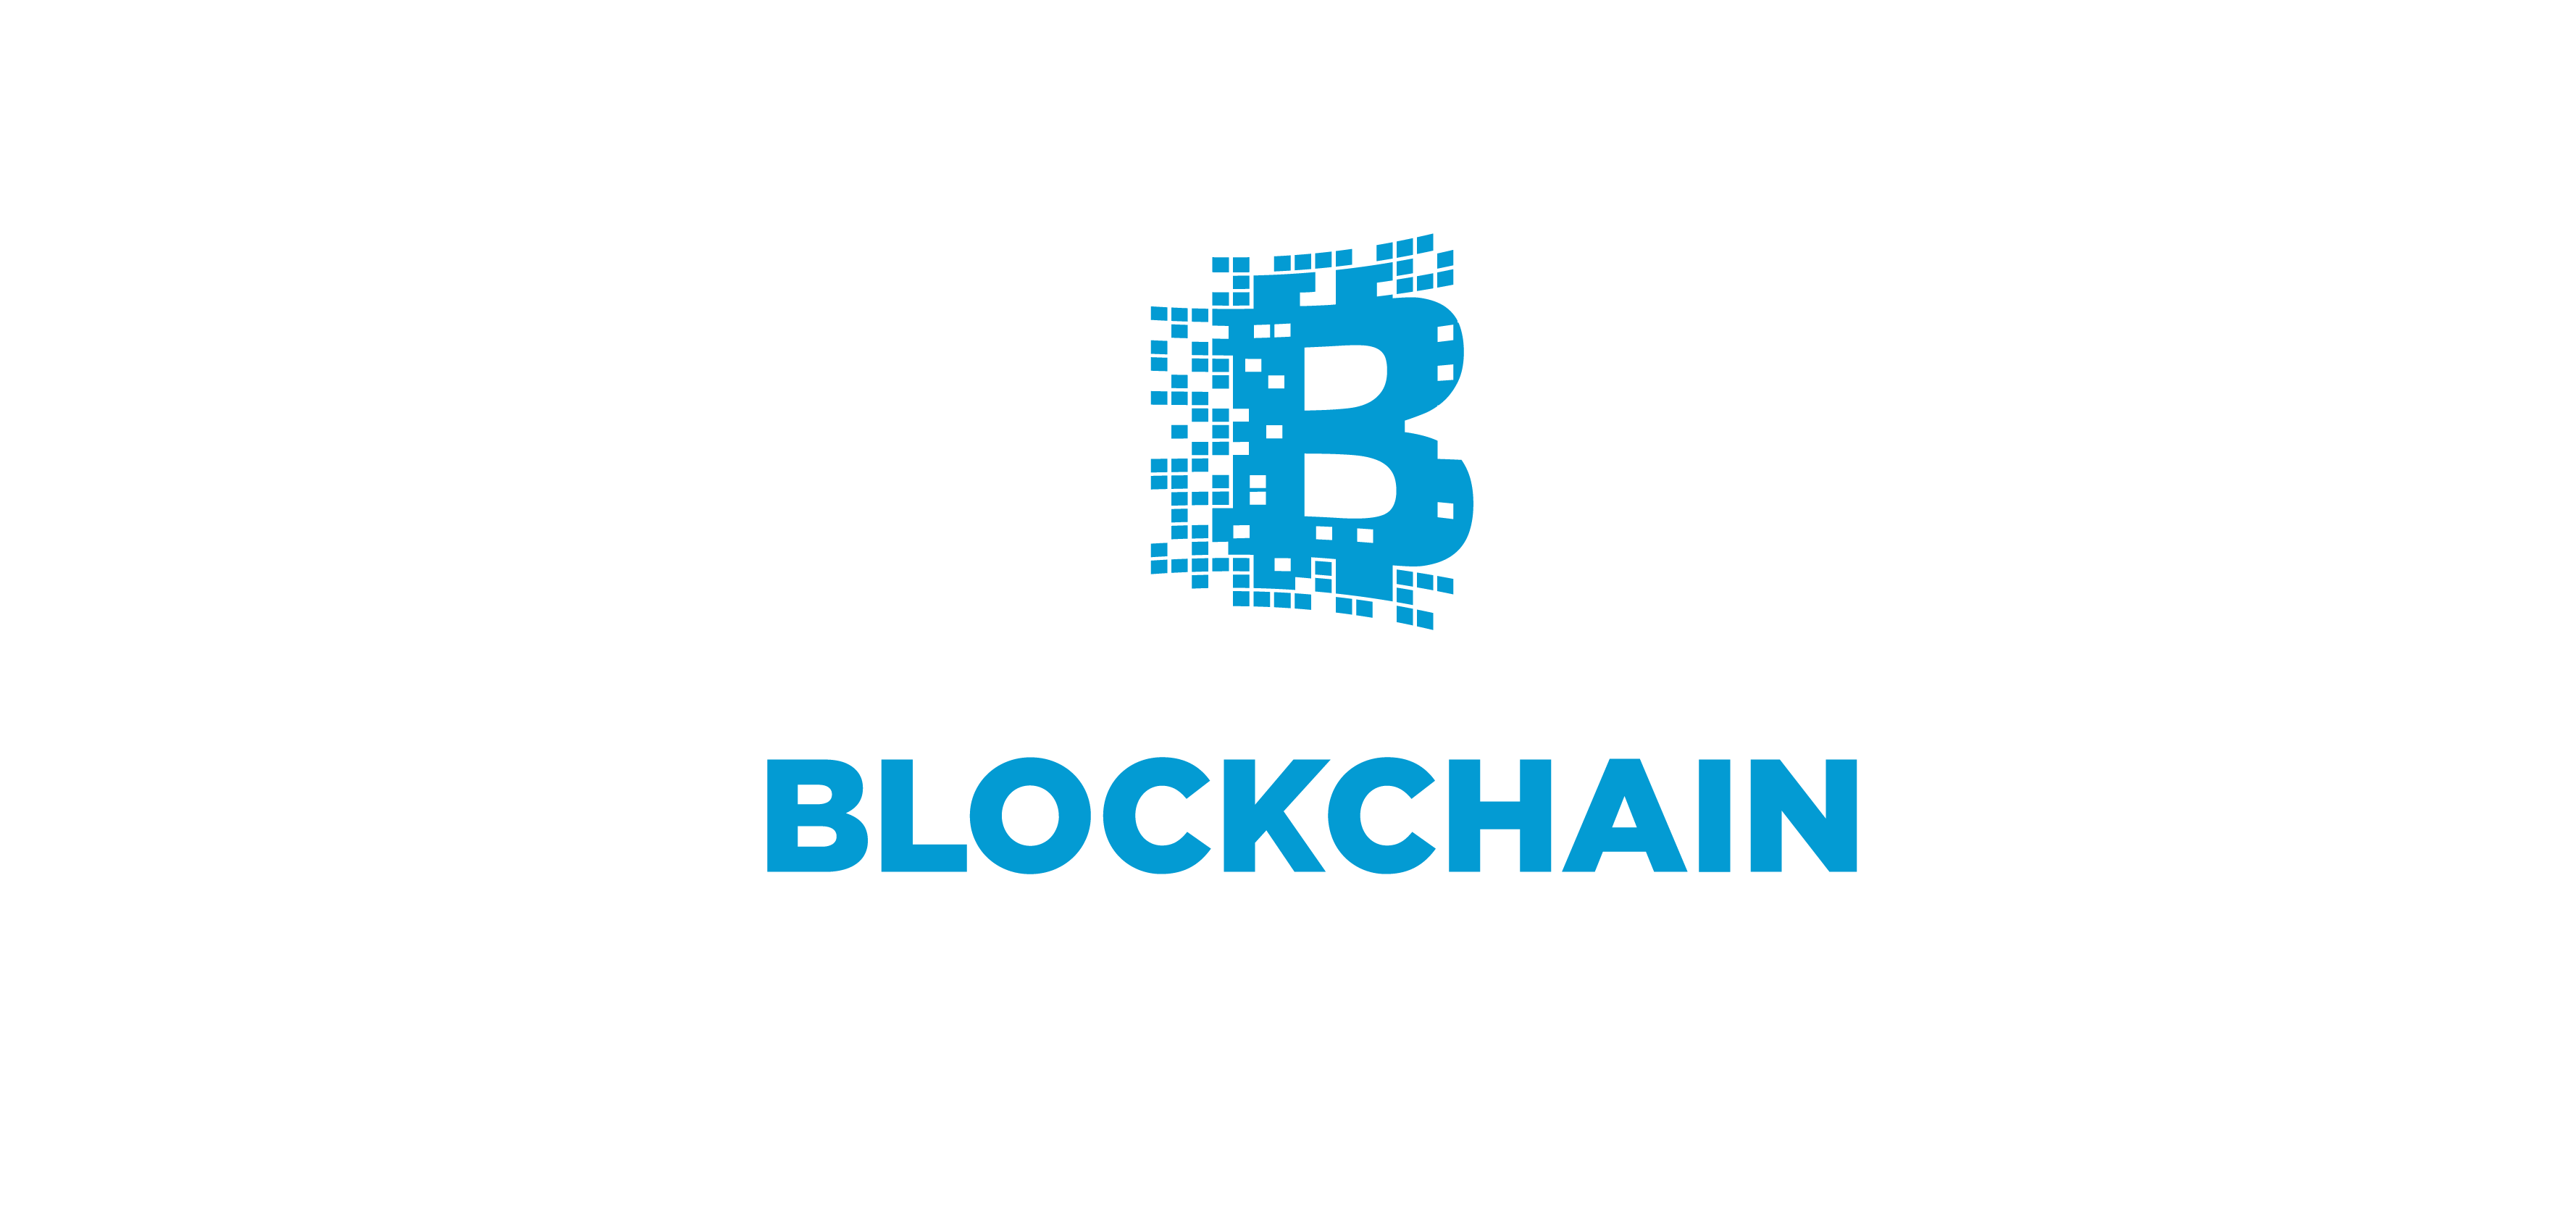 Blockchain Logo - Blockchain Gets Barclays' Antony Jenkins as Board Member